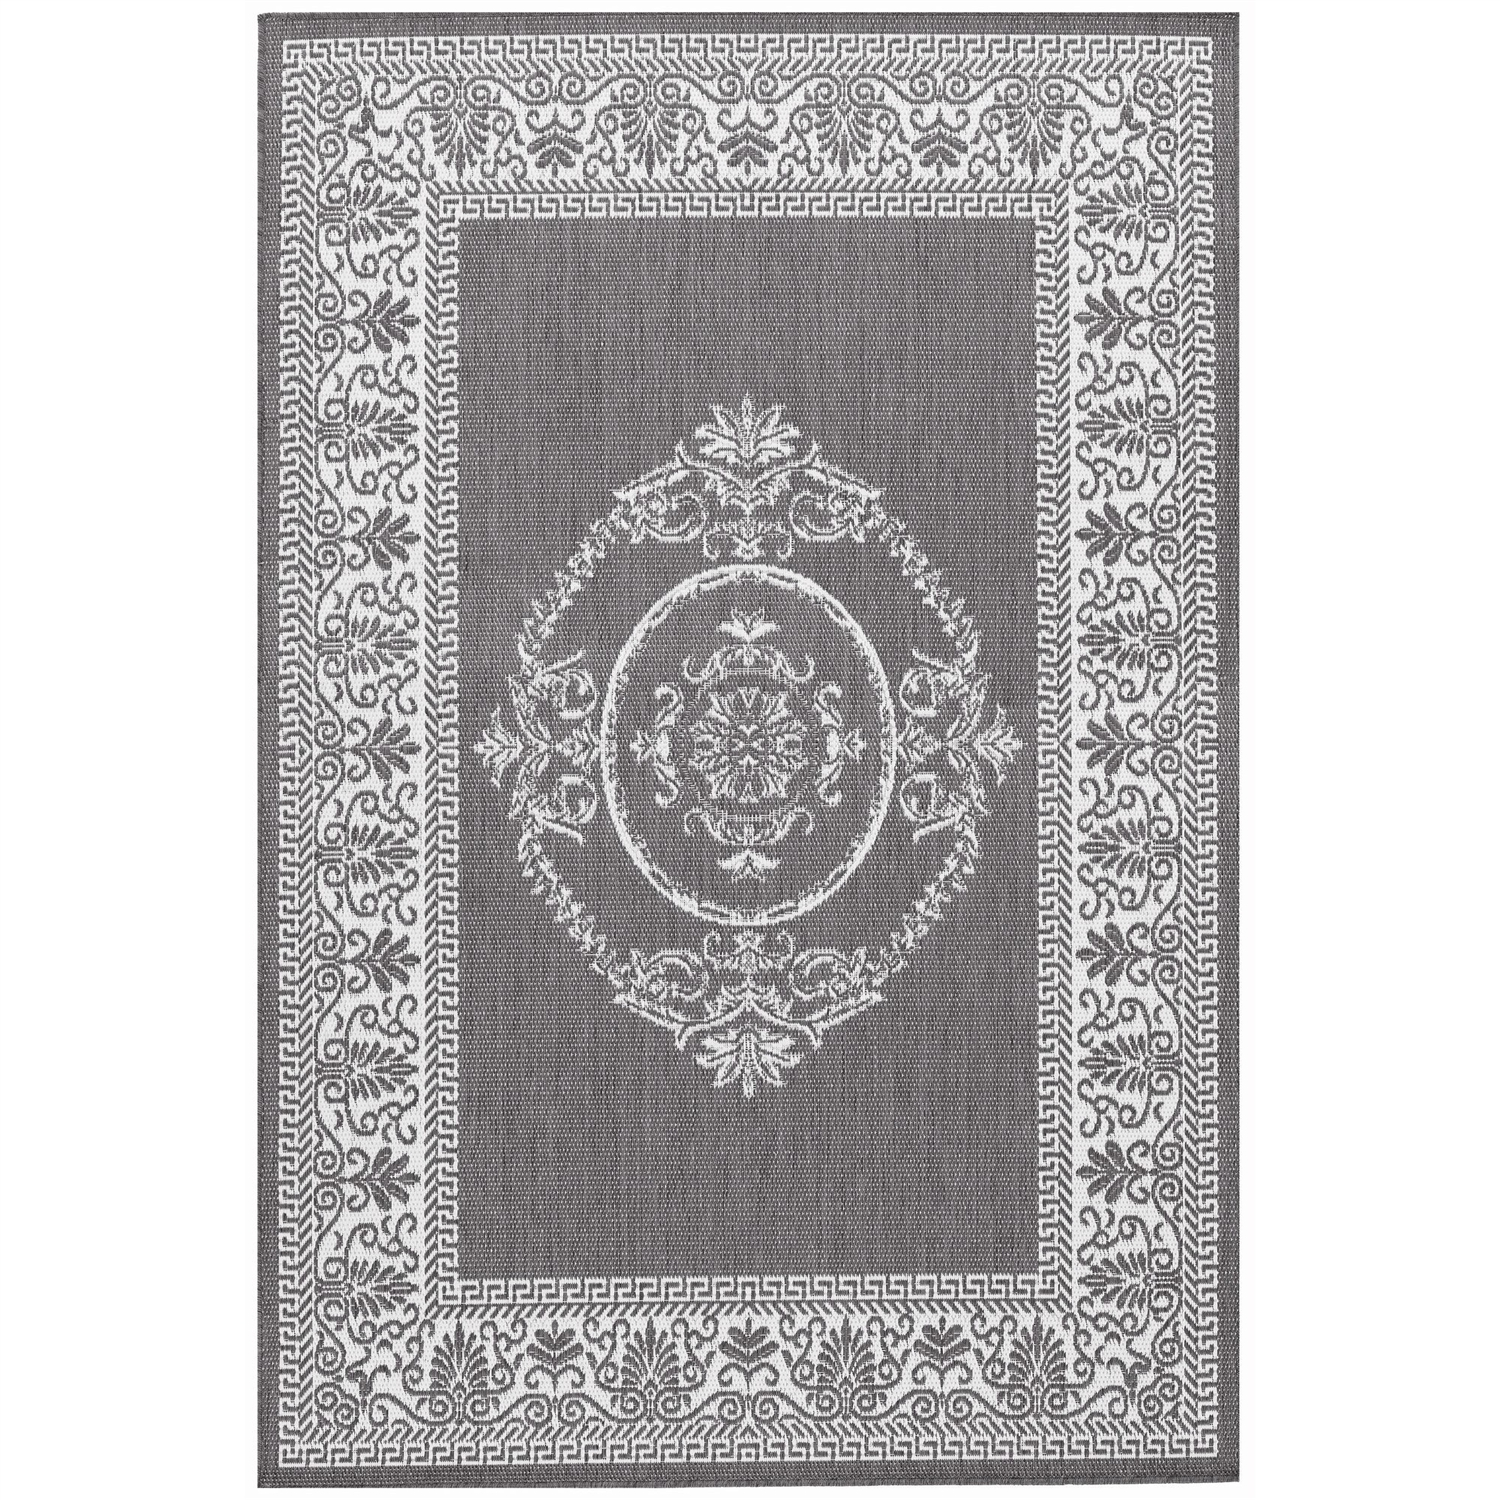 5'10 x 9'2 Grey White Medallion Indoor Outdoor Area Rug, AMGYR130631 :  Distinctively designed to complement the simple yet classic styling of this 5'10 x 9'2 Grey White Medallion Indoor Outdoor Area Rug, uniquely colored to make stone entryways and patio decks warmer and more inviting. The naturally inspired color palette offered in this versatile collection features a series of unique combinations of natural hues that have been selected to complement today's hottest outdoor home furnishings. Including runners and special shapes in the form of rounds and squares. Mold/Mildew Resistant.